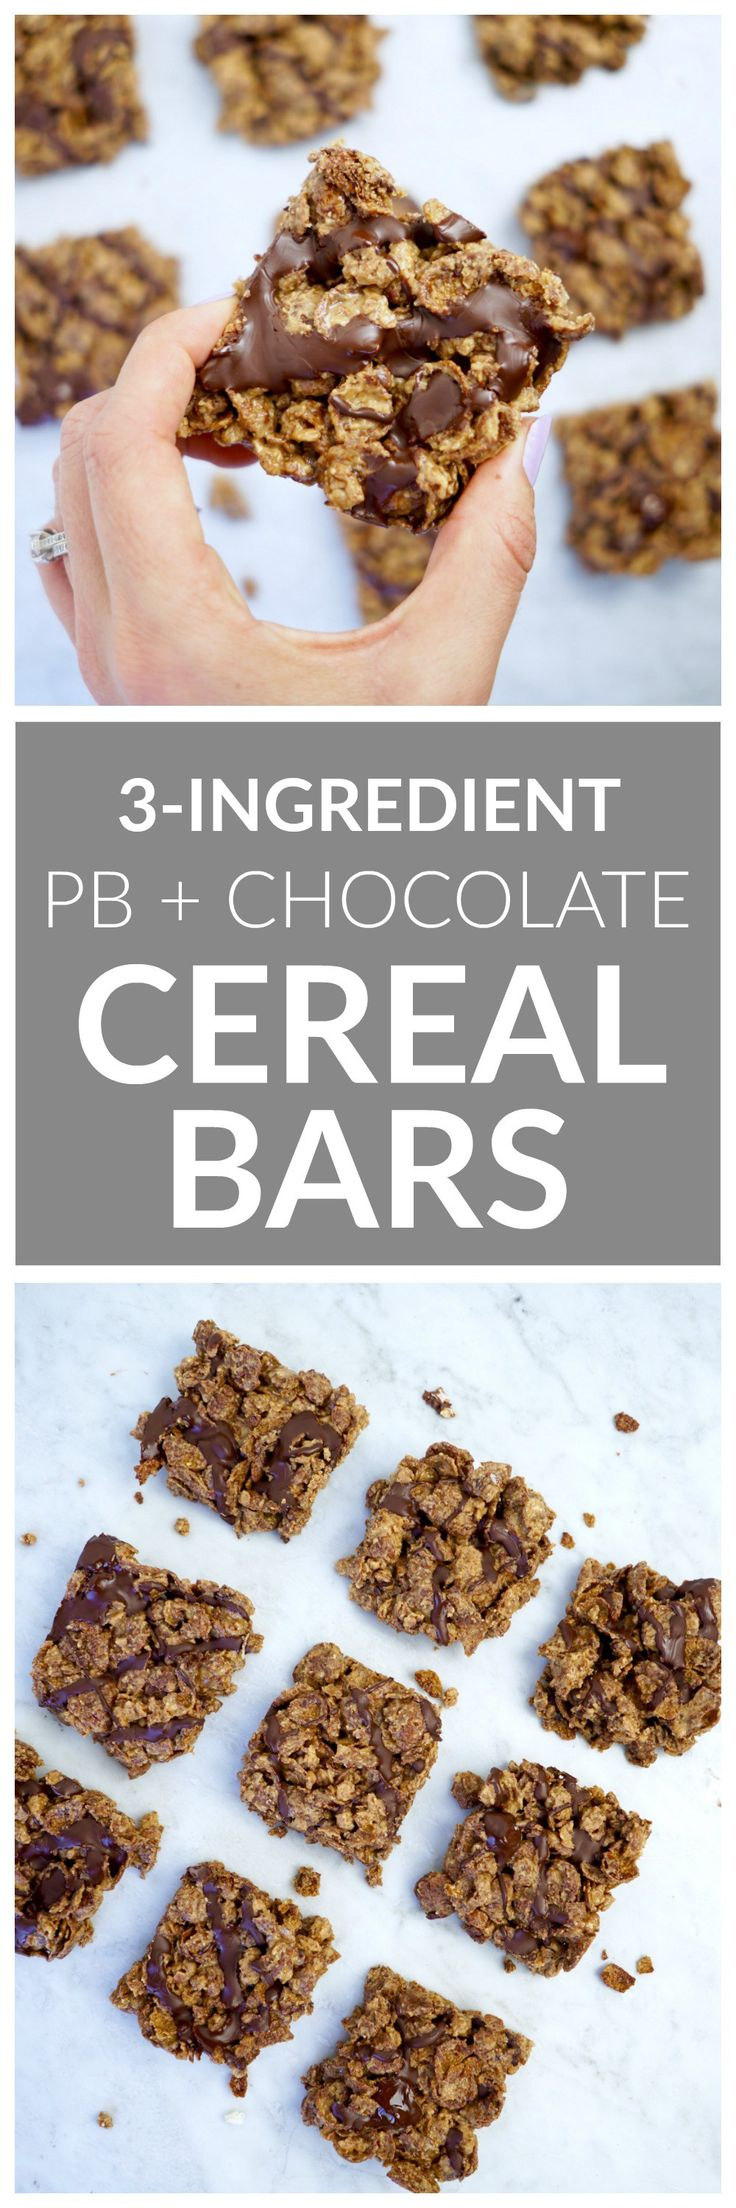 3-Ingredient Peanut Butter Chocolate Cereal Bars - made with three simple ingredients: whole grain cereal, peanut butter + a hint of maple syrup. A great healthy dessert for kids + adults alike!